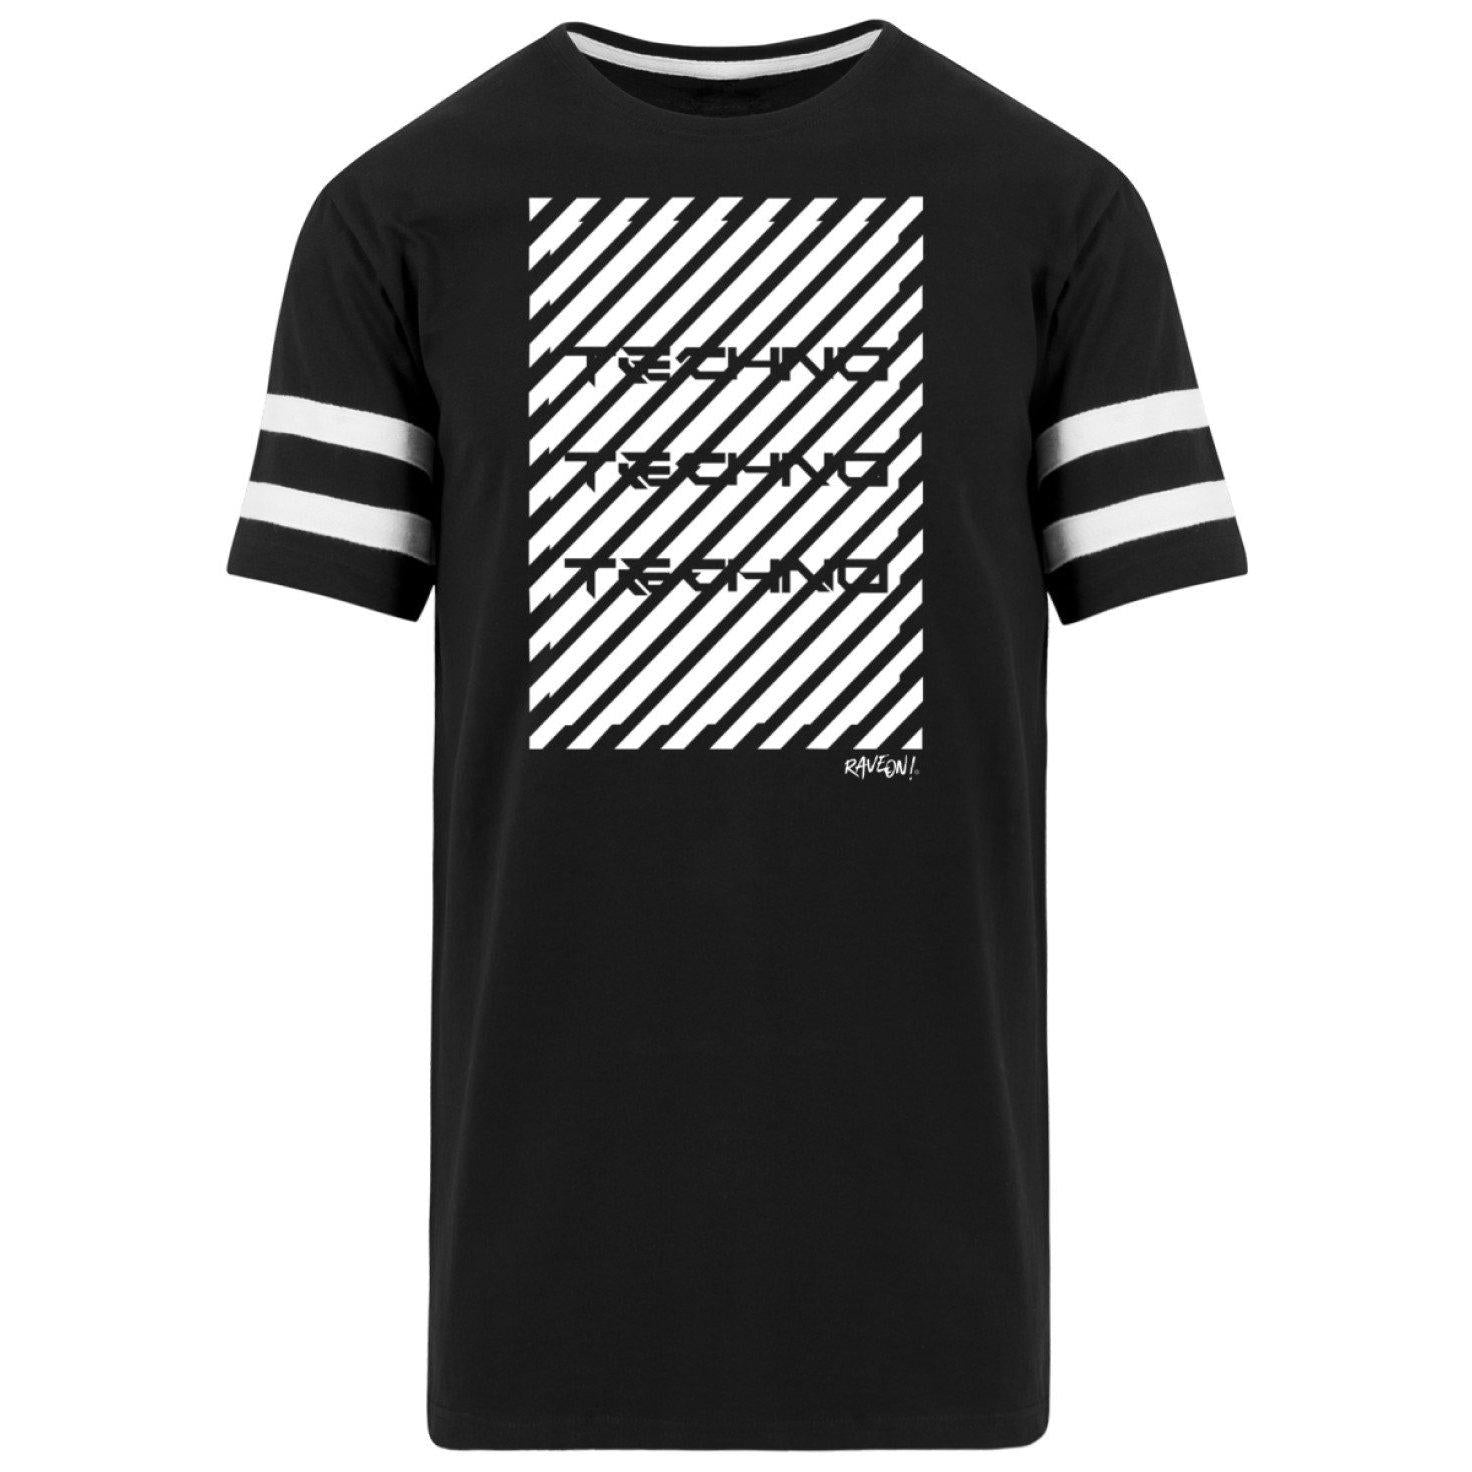 Techno Warning Rave On!® - Herren Striped Long Shirt Striped Long Shirt Black / S - Rave On!® der Club & Techno Szene Shop für Coole Junge Mode Streetwear Style & Fashion Outfits + Sexy Festival 420 Stuff